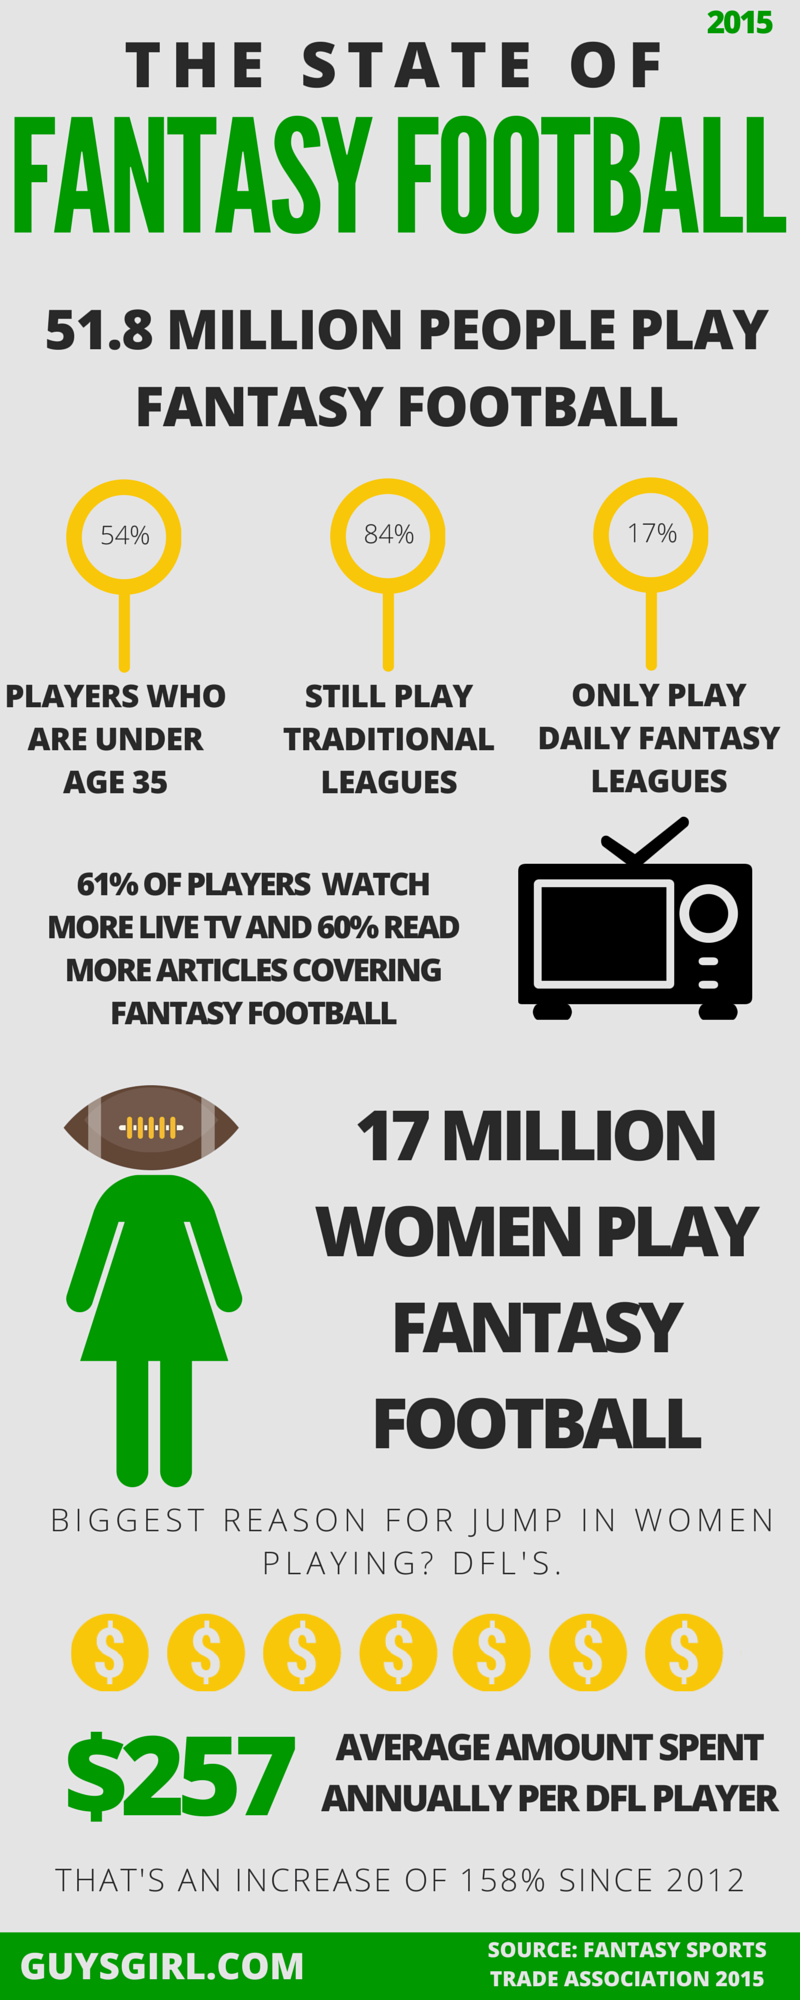 2015 State of Fantasy Football